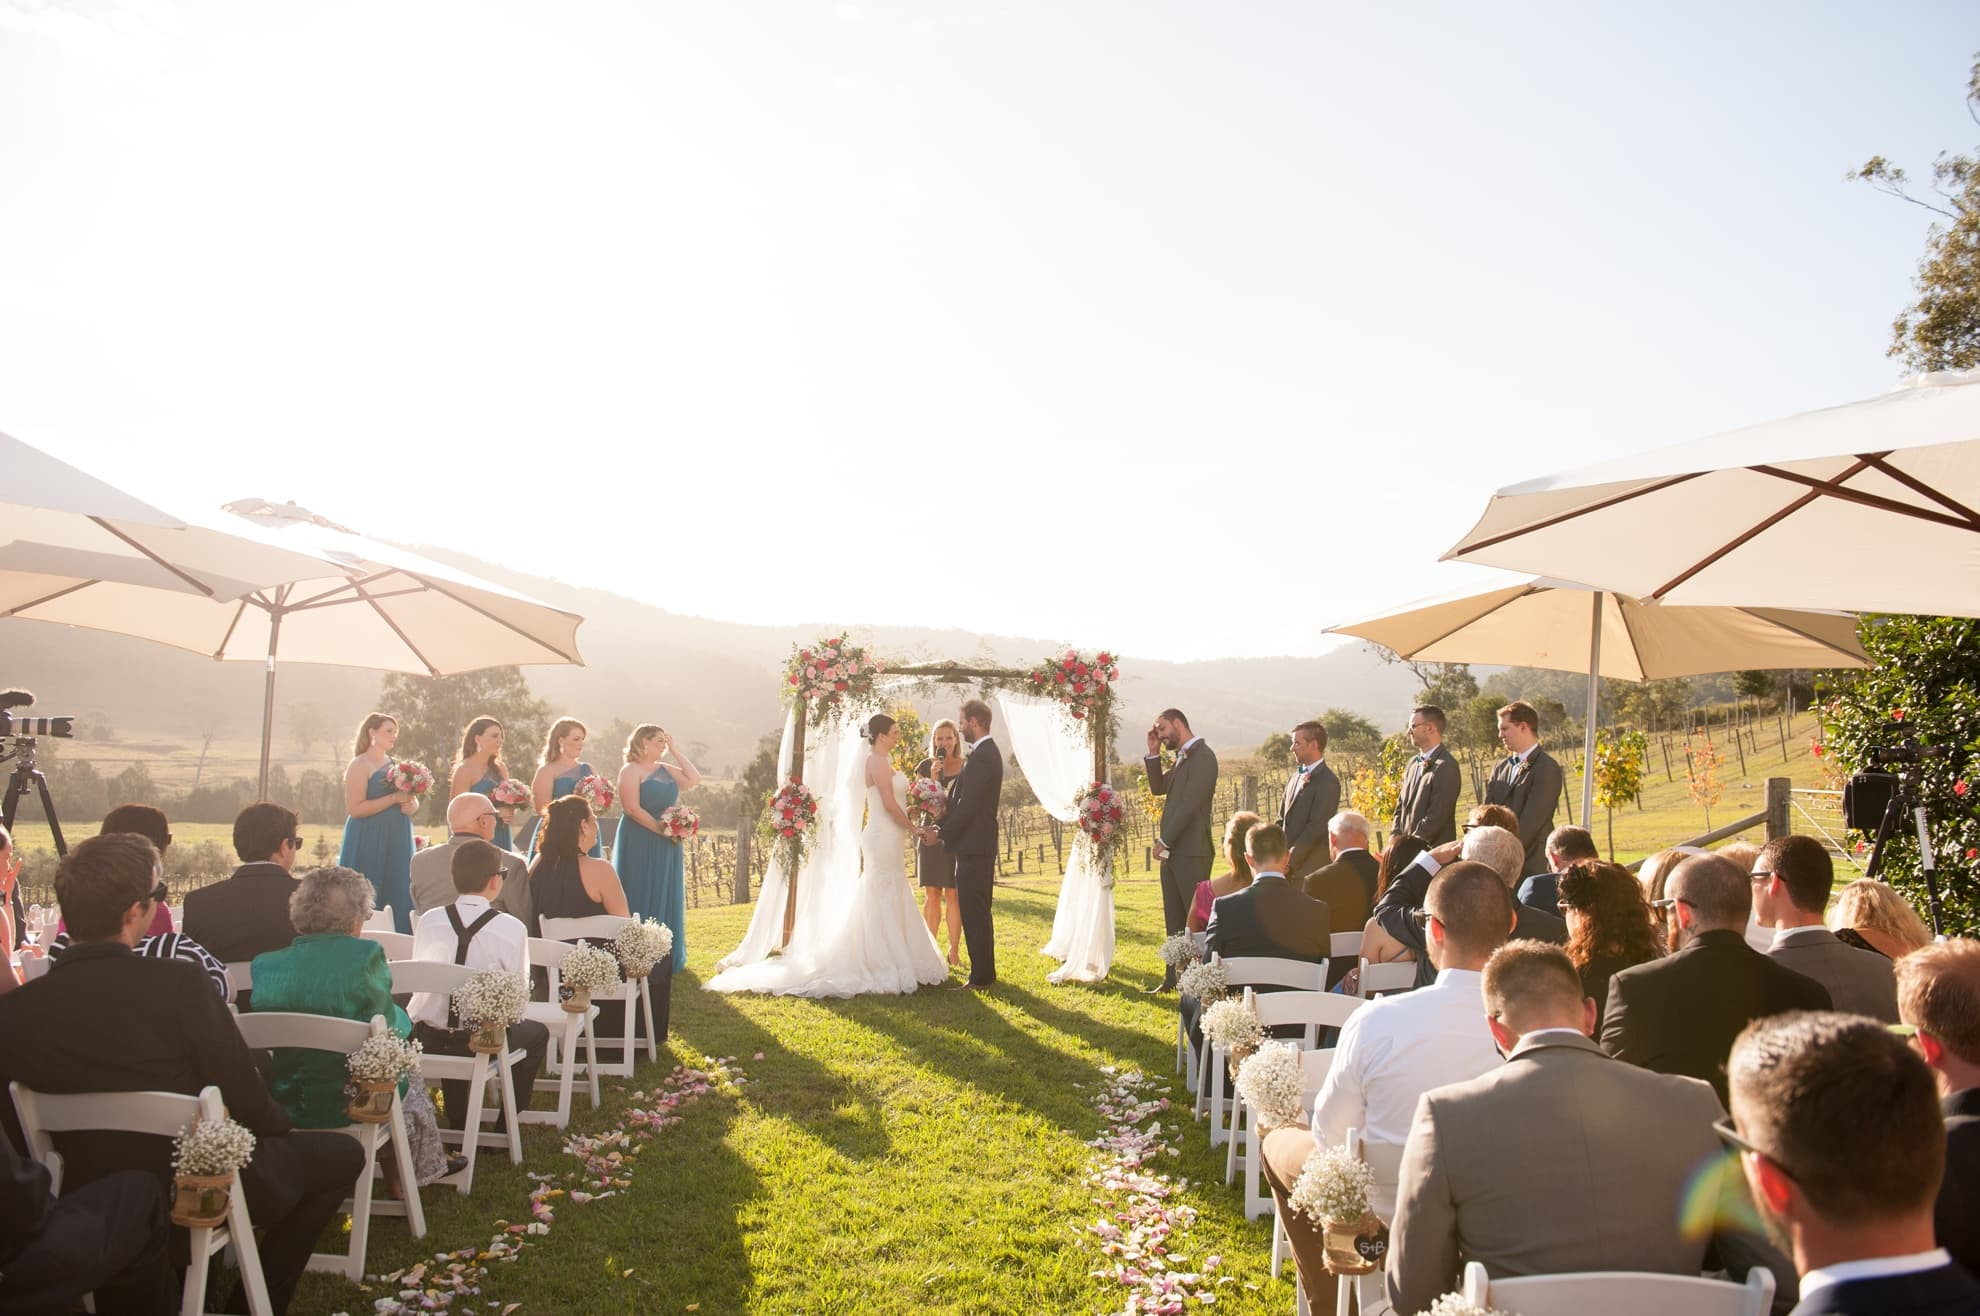 the-ceremony-location-vineyard-in-the-background-with-the-guests-and-bridal-party